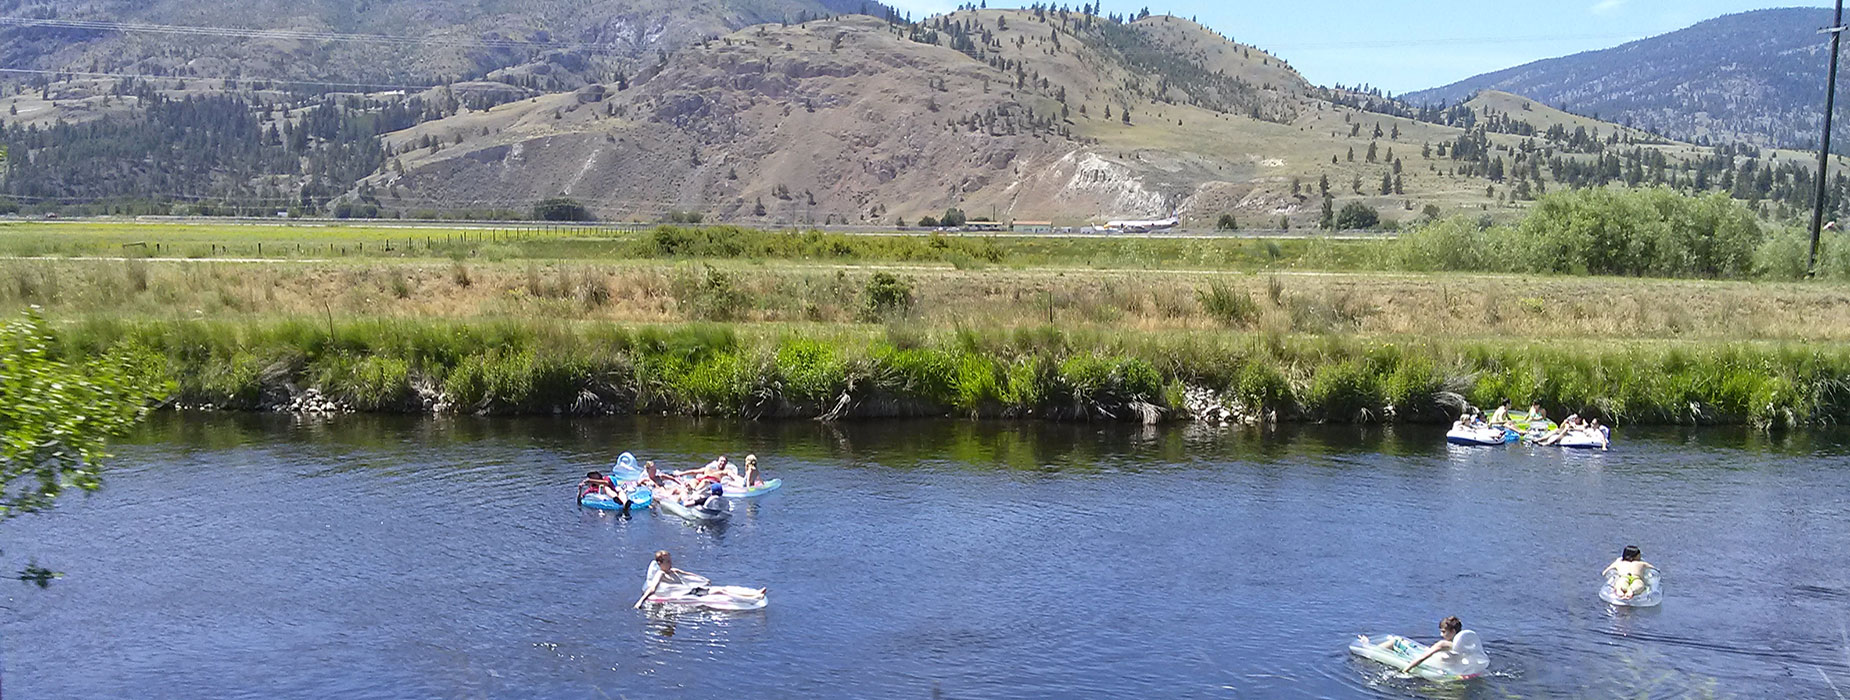 EasyGo Holidays is an RV vacation rental business in the Okanagan where we set everything up in a location of your choice.